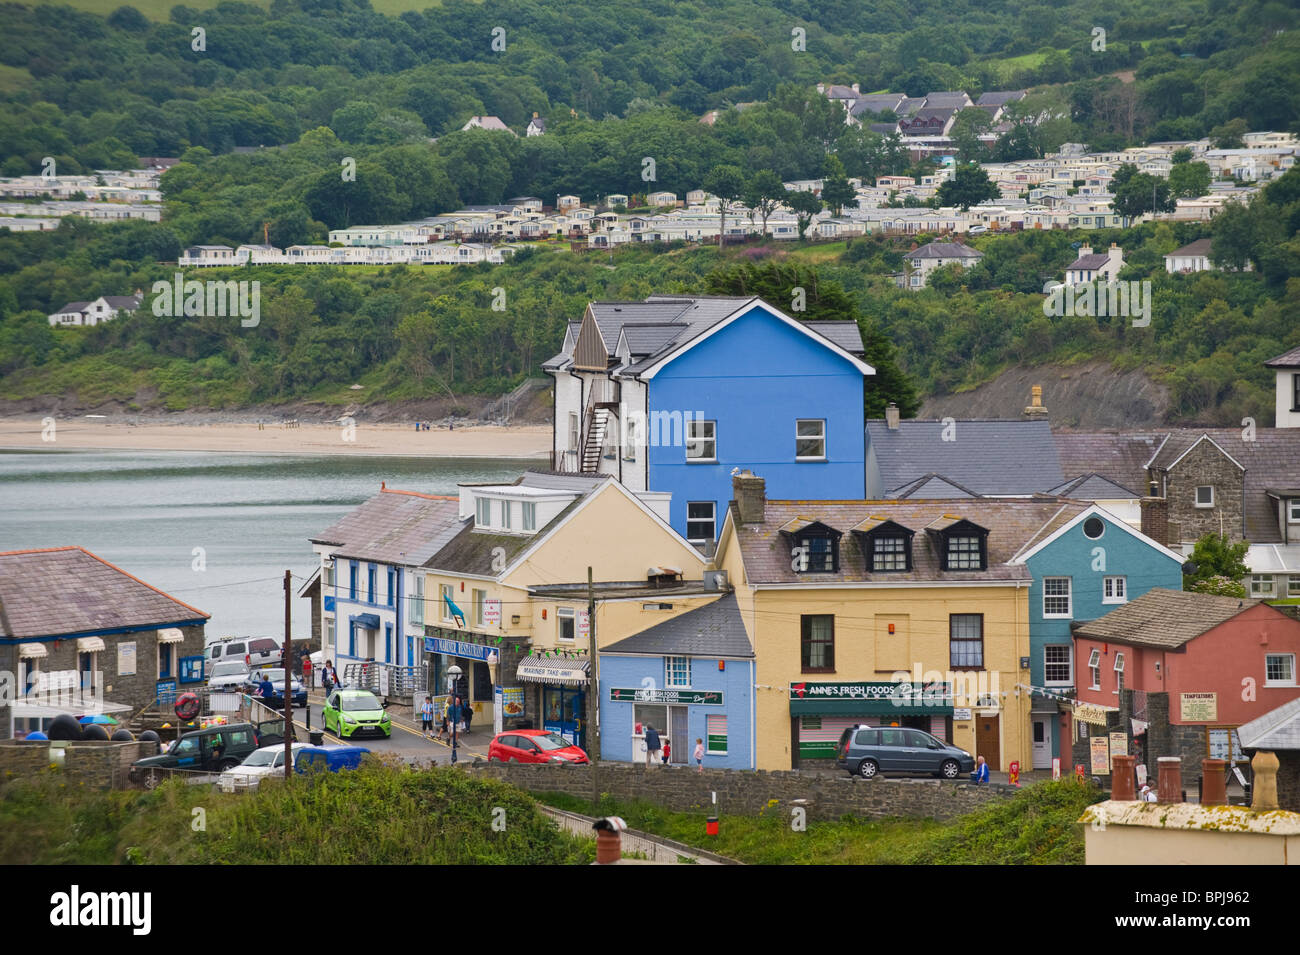 View over town centre of the seaside holiday resort of New Quay Ceredigion West Wales UK - Stock Image